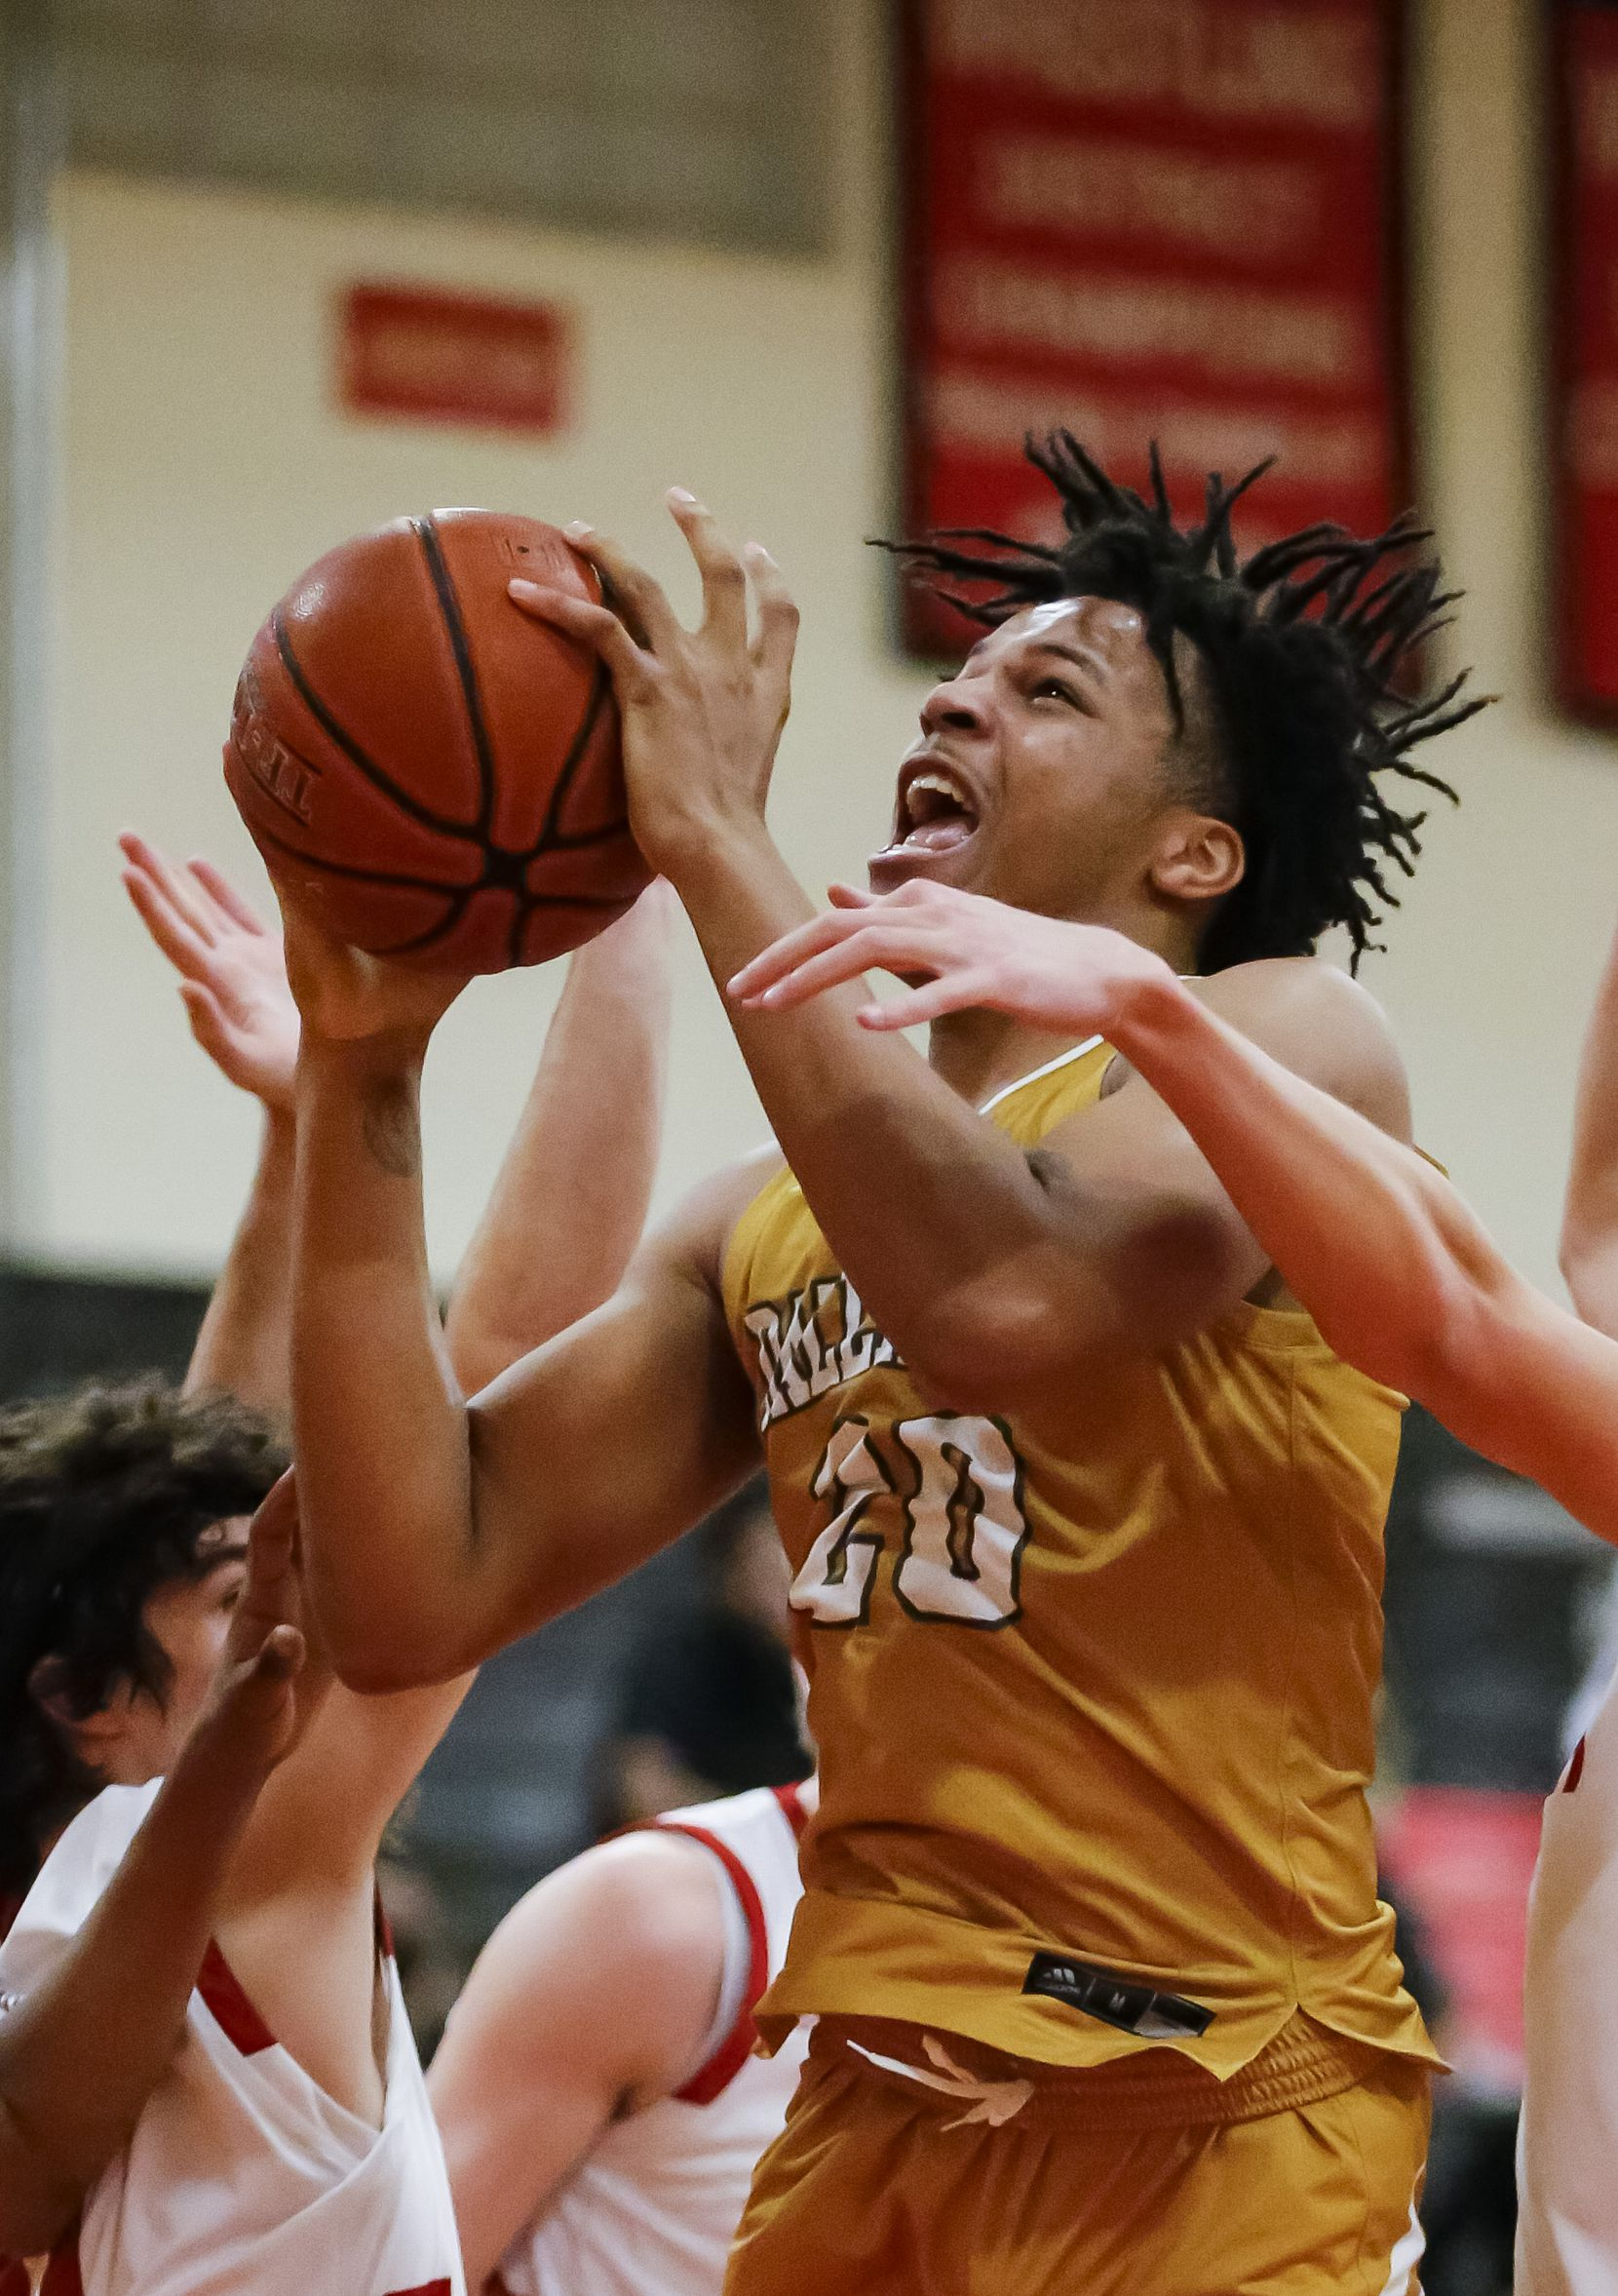 South Oak Cliff senior guard Corey Flowers battles the Lovejoy defense during the second half of a Class 5A area-round playoff basketball game at Lake Highlands High School in Dallas, Wednesday, February 24, 2021.  South oak Cliff won 46-44. (Brandon Wade/Special Contributor)